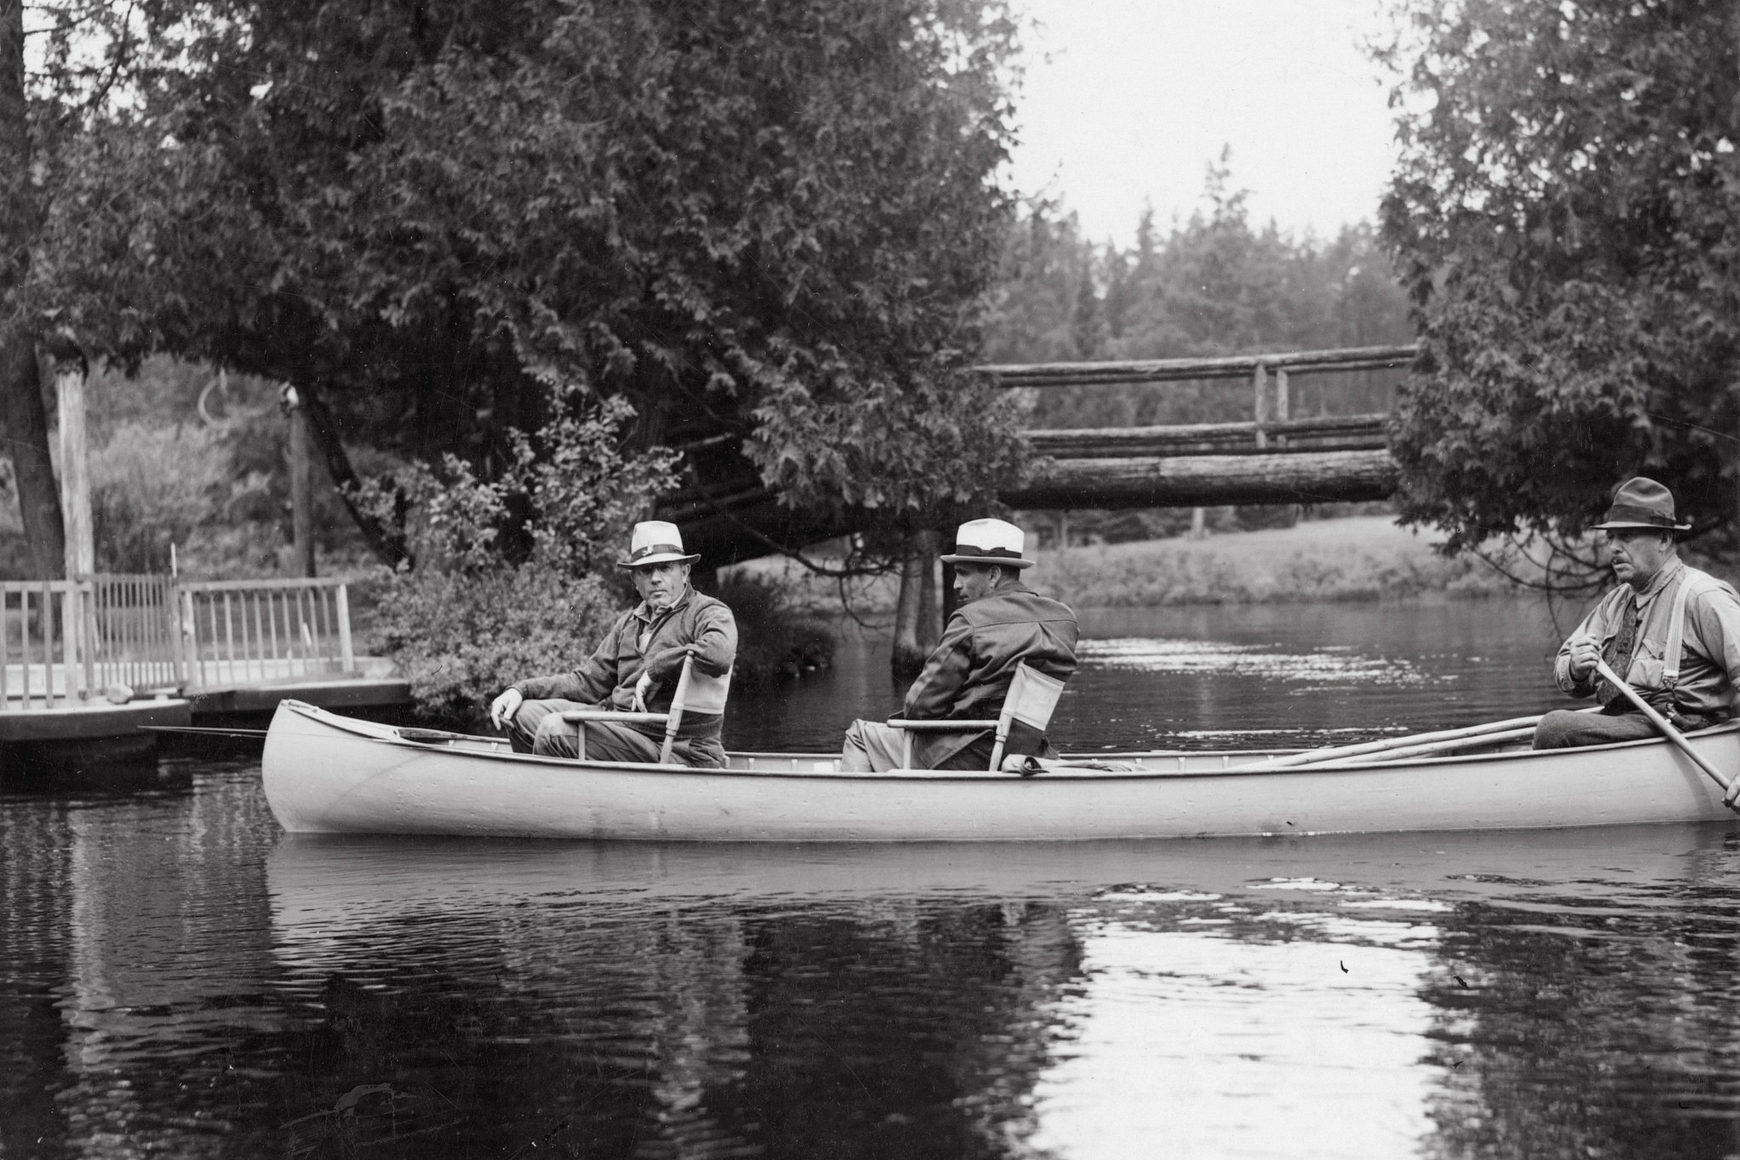 Historic photo of three men in a canoe on the Brule River